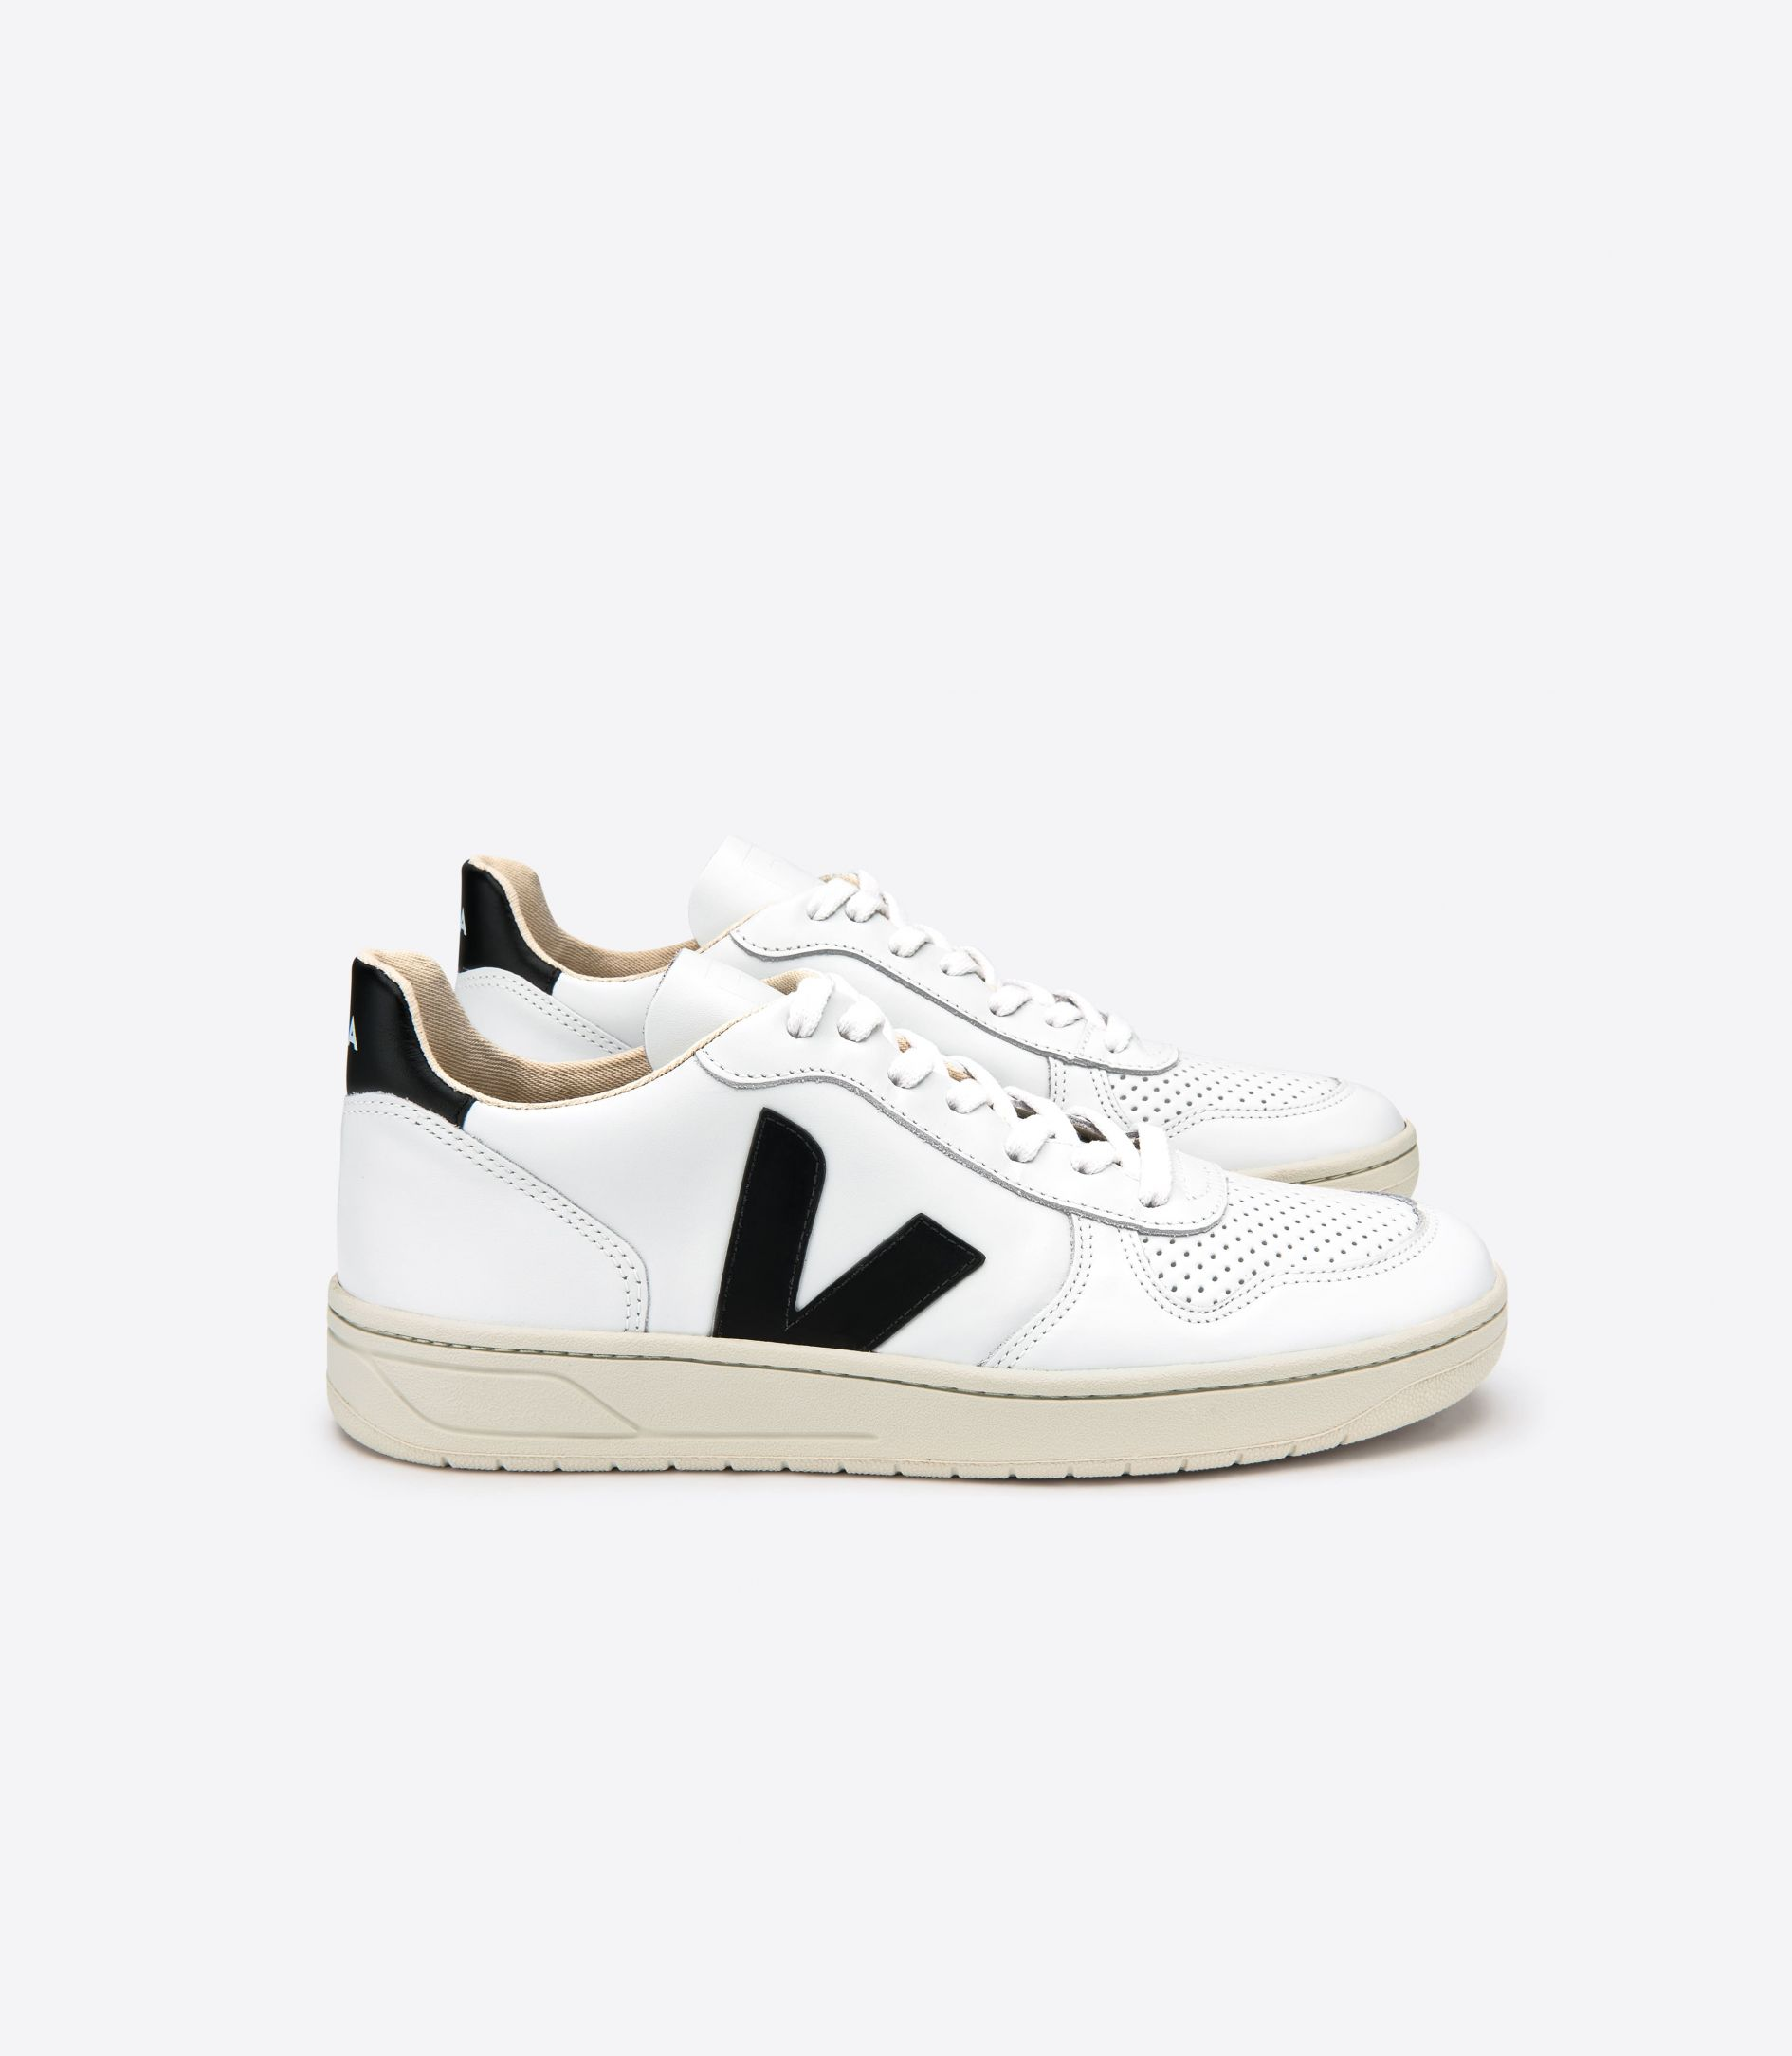 Why the Veja V-10 sneaker is my